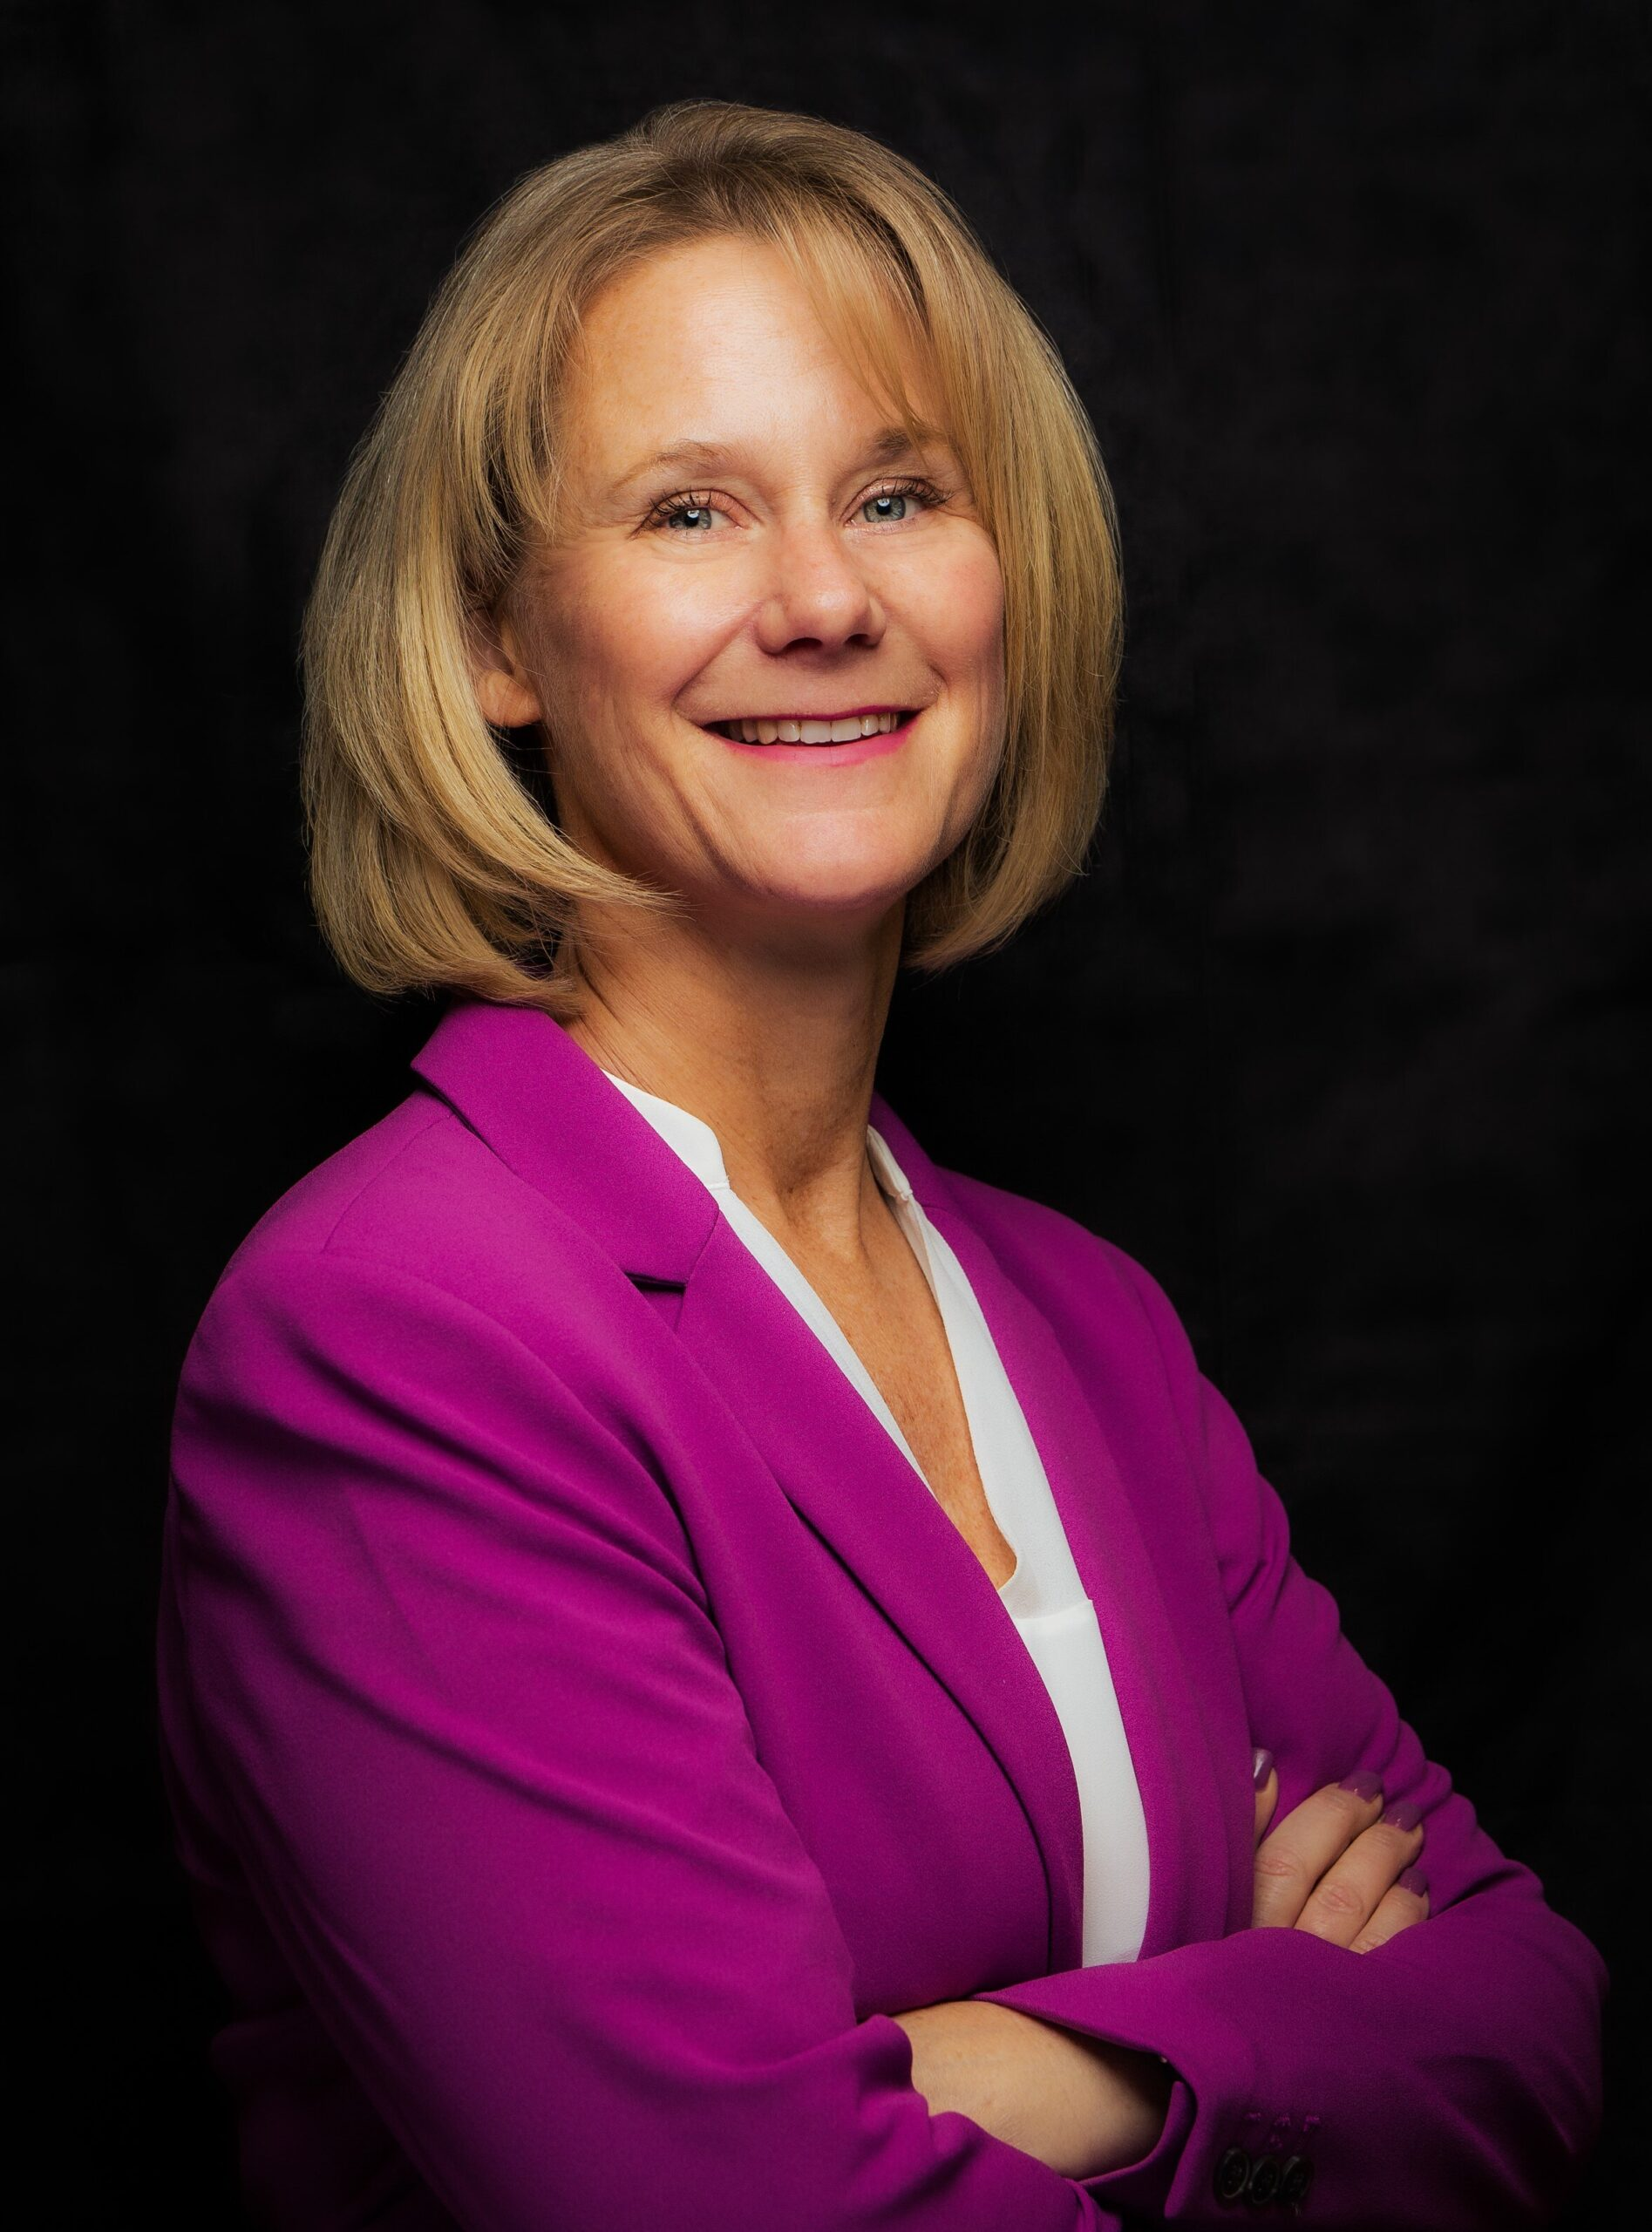 Portrait foto of Laura Matz, the new Chief Science and Technology Officer at Merck